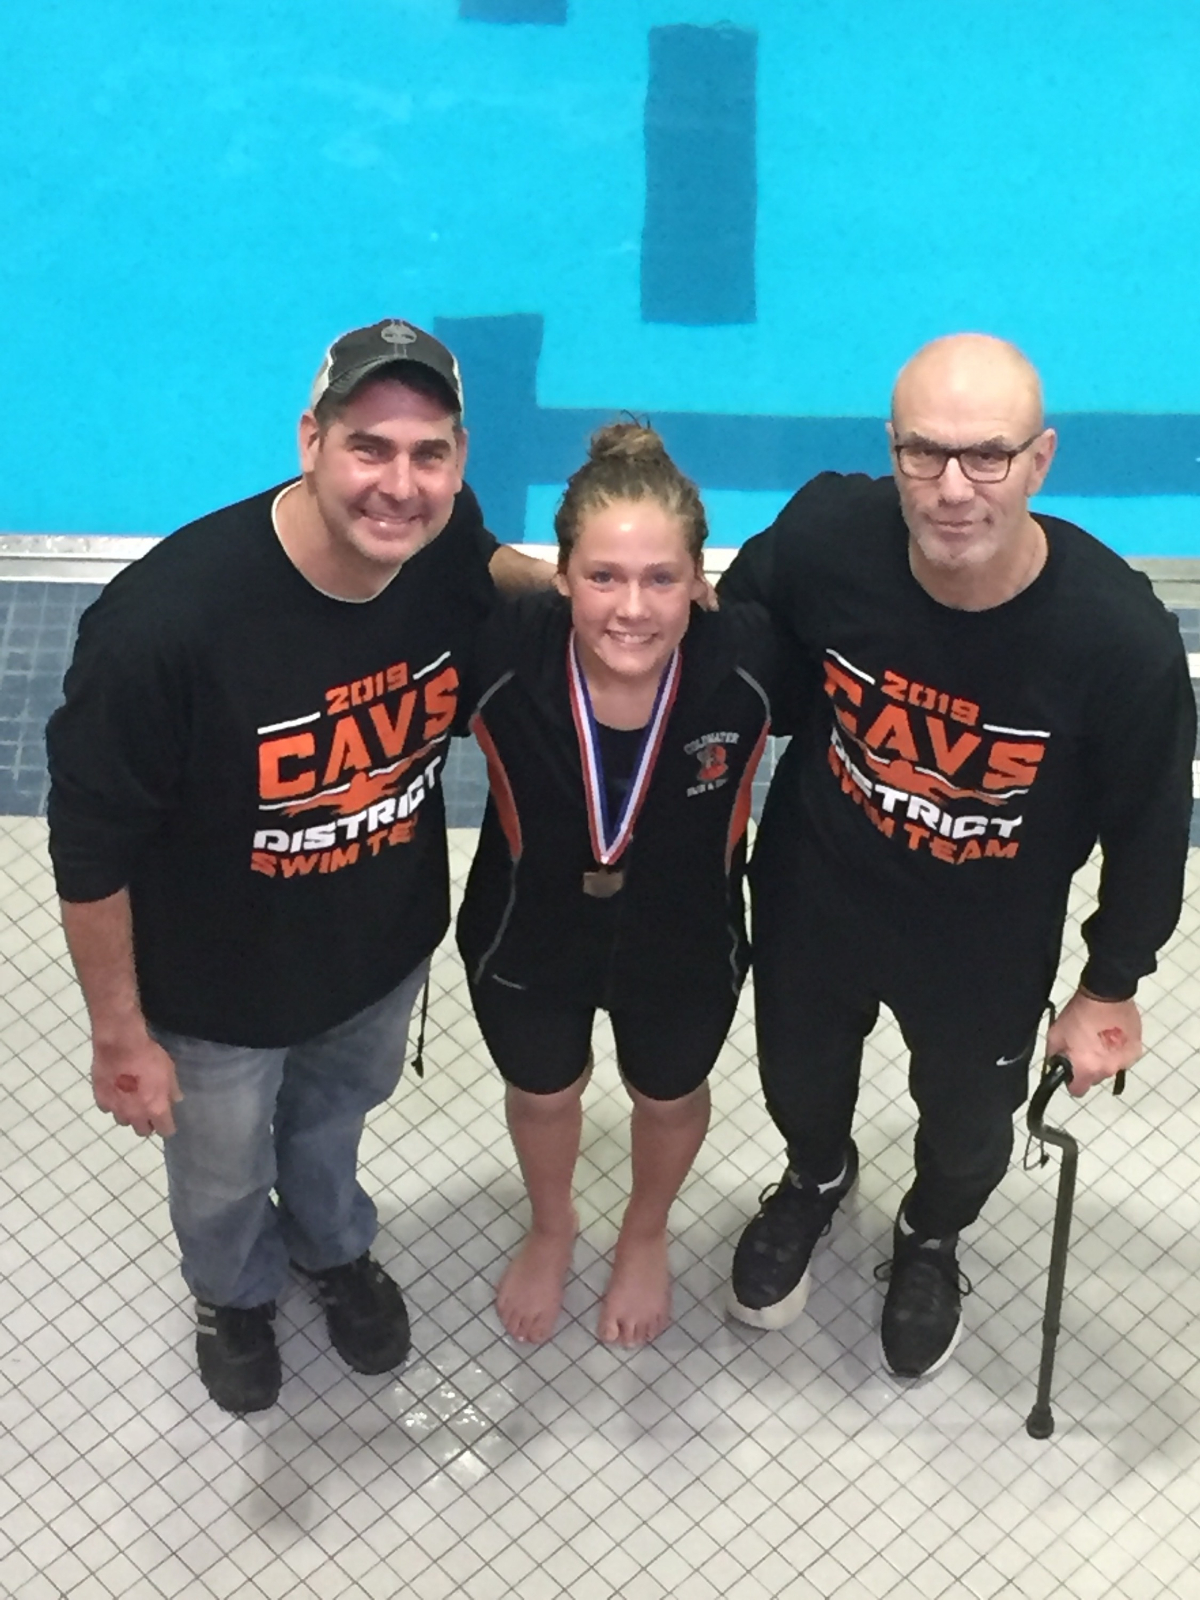 Macy May is headed to State Swim